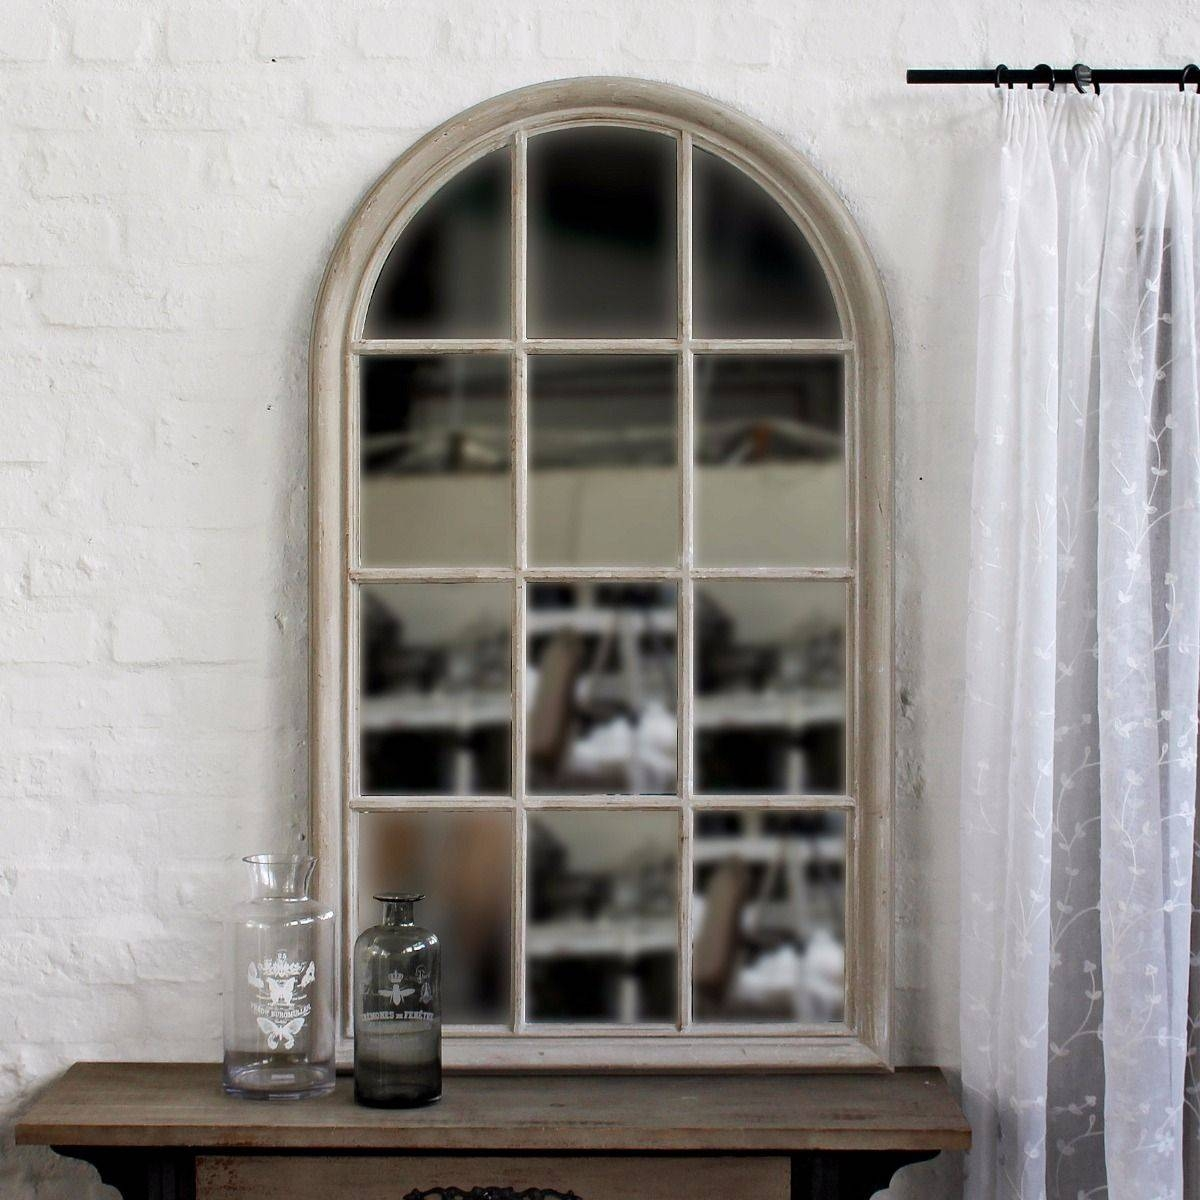 Arch Window Mirror, House Grey intended for Arched Window Mirrors (Image 2 of 25)